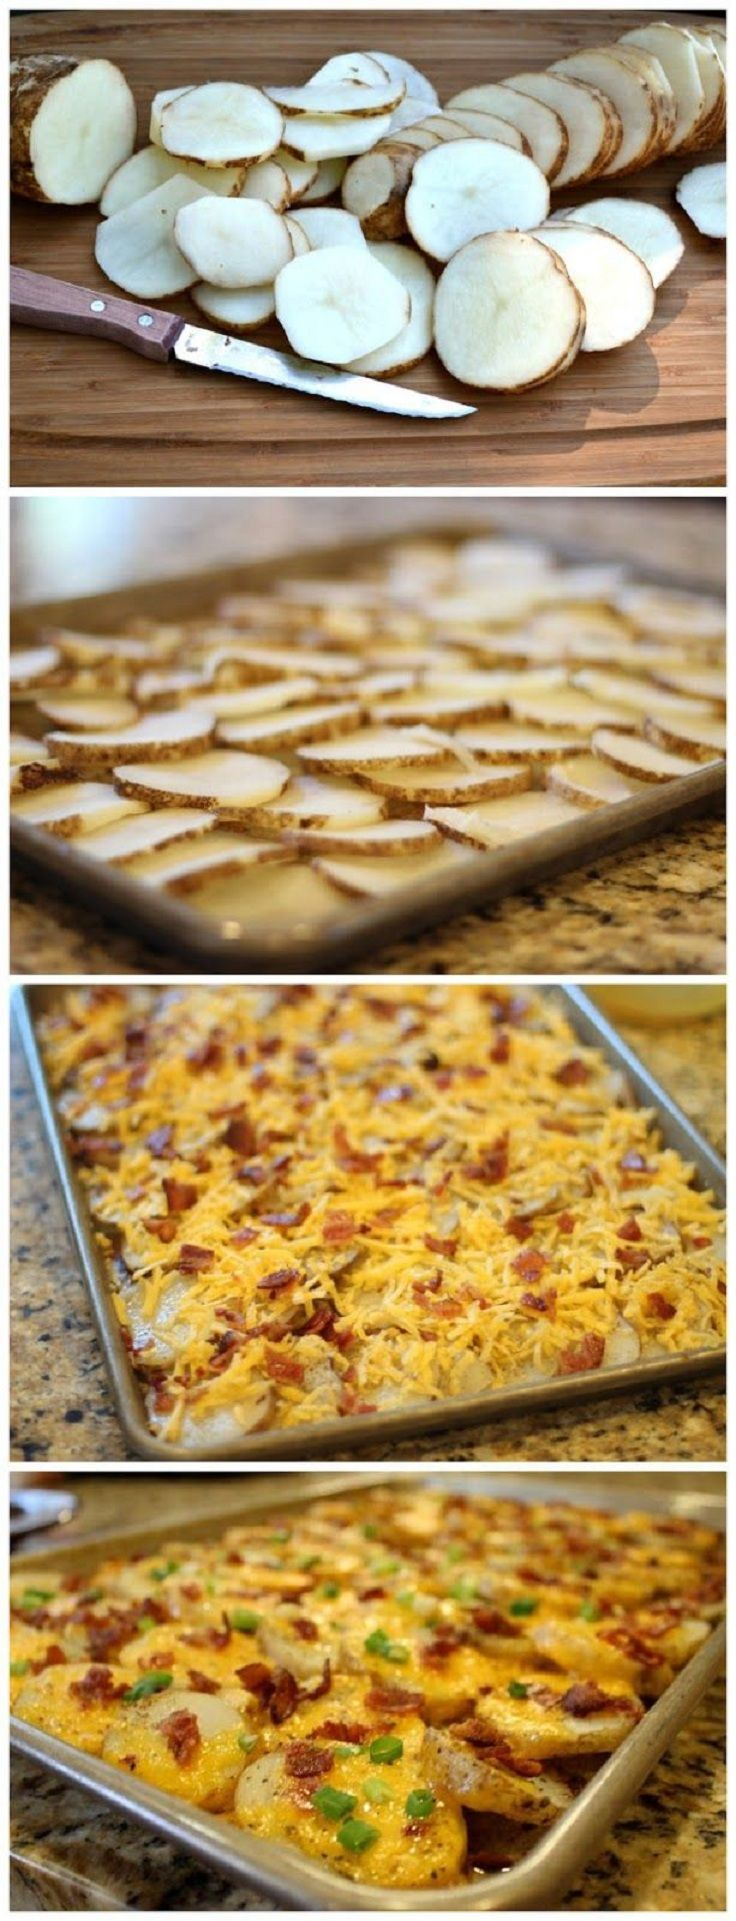 Cheesy Bacon Potato Bites - Boil sliced potatoes for 5 minutes, layer on sprayed sheet, top with cheese (no bacon for me), bake at 375 for 15 minutes, top with green onion..